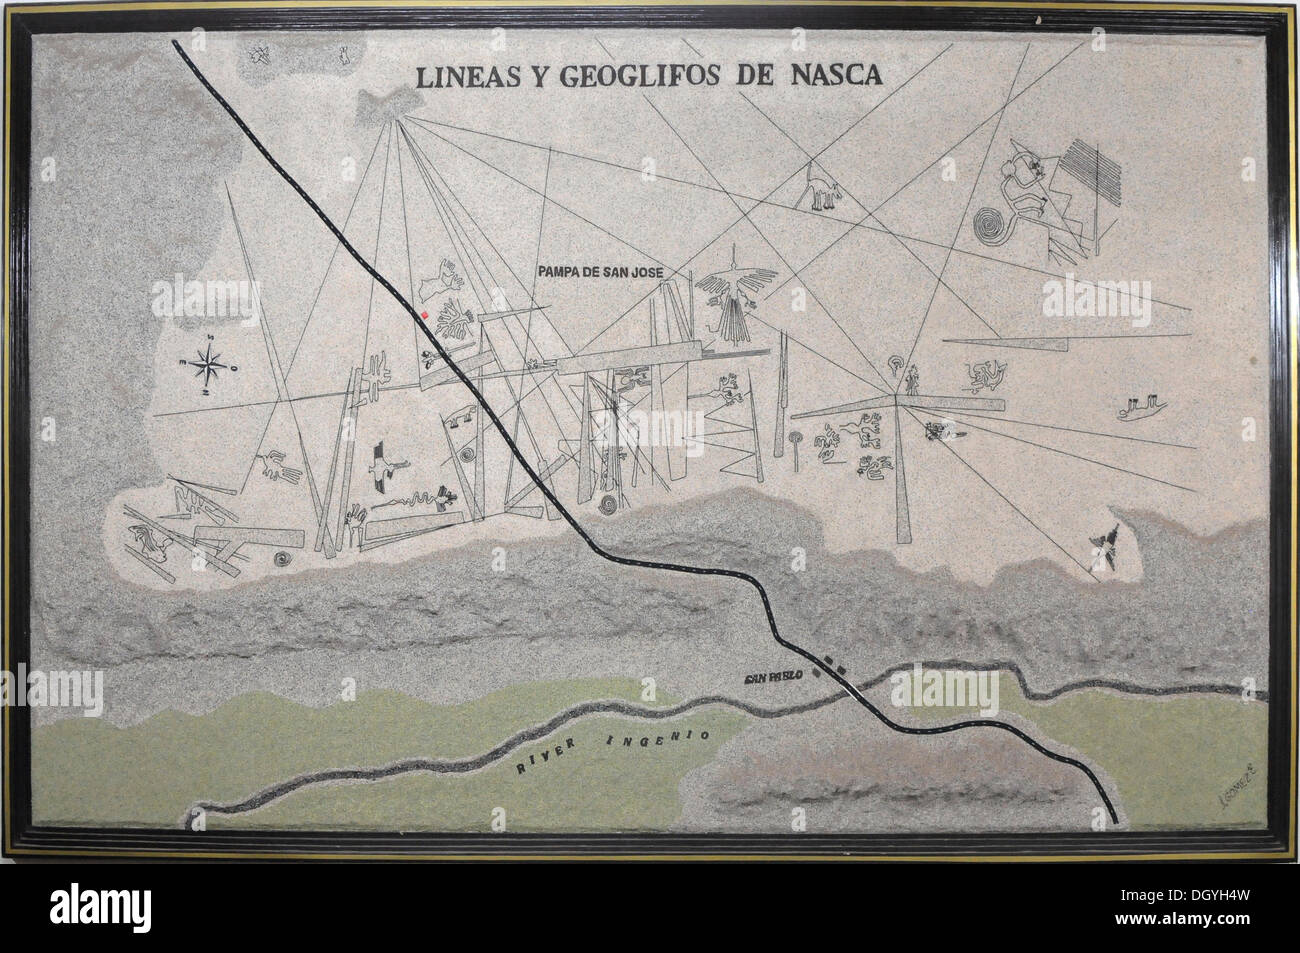 Map Showing An Overview Of The Nazca Lines Nazca Inca Peru - Map of usa showing san jose